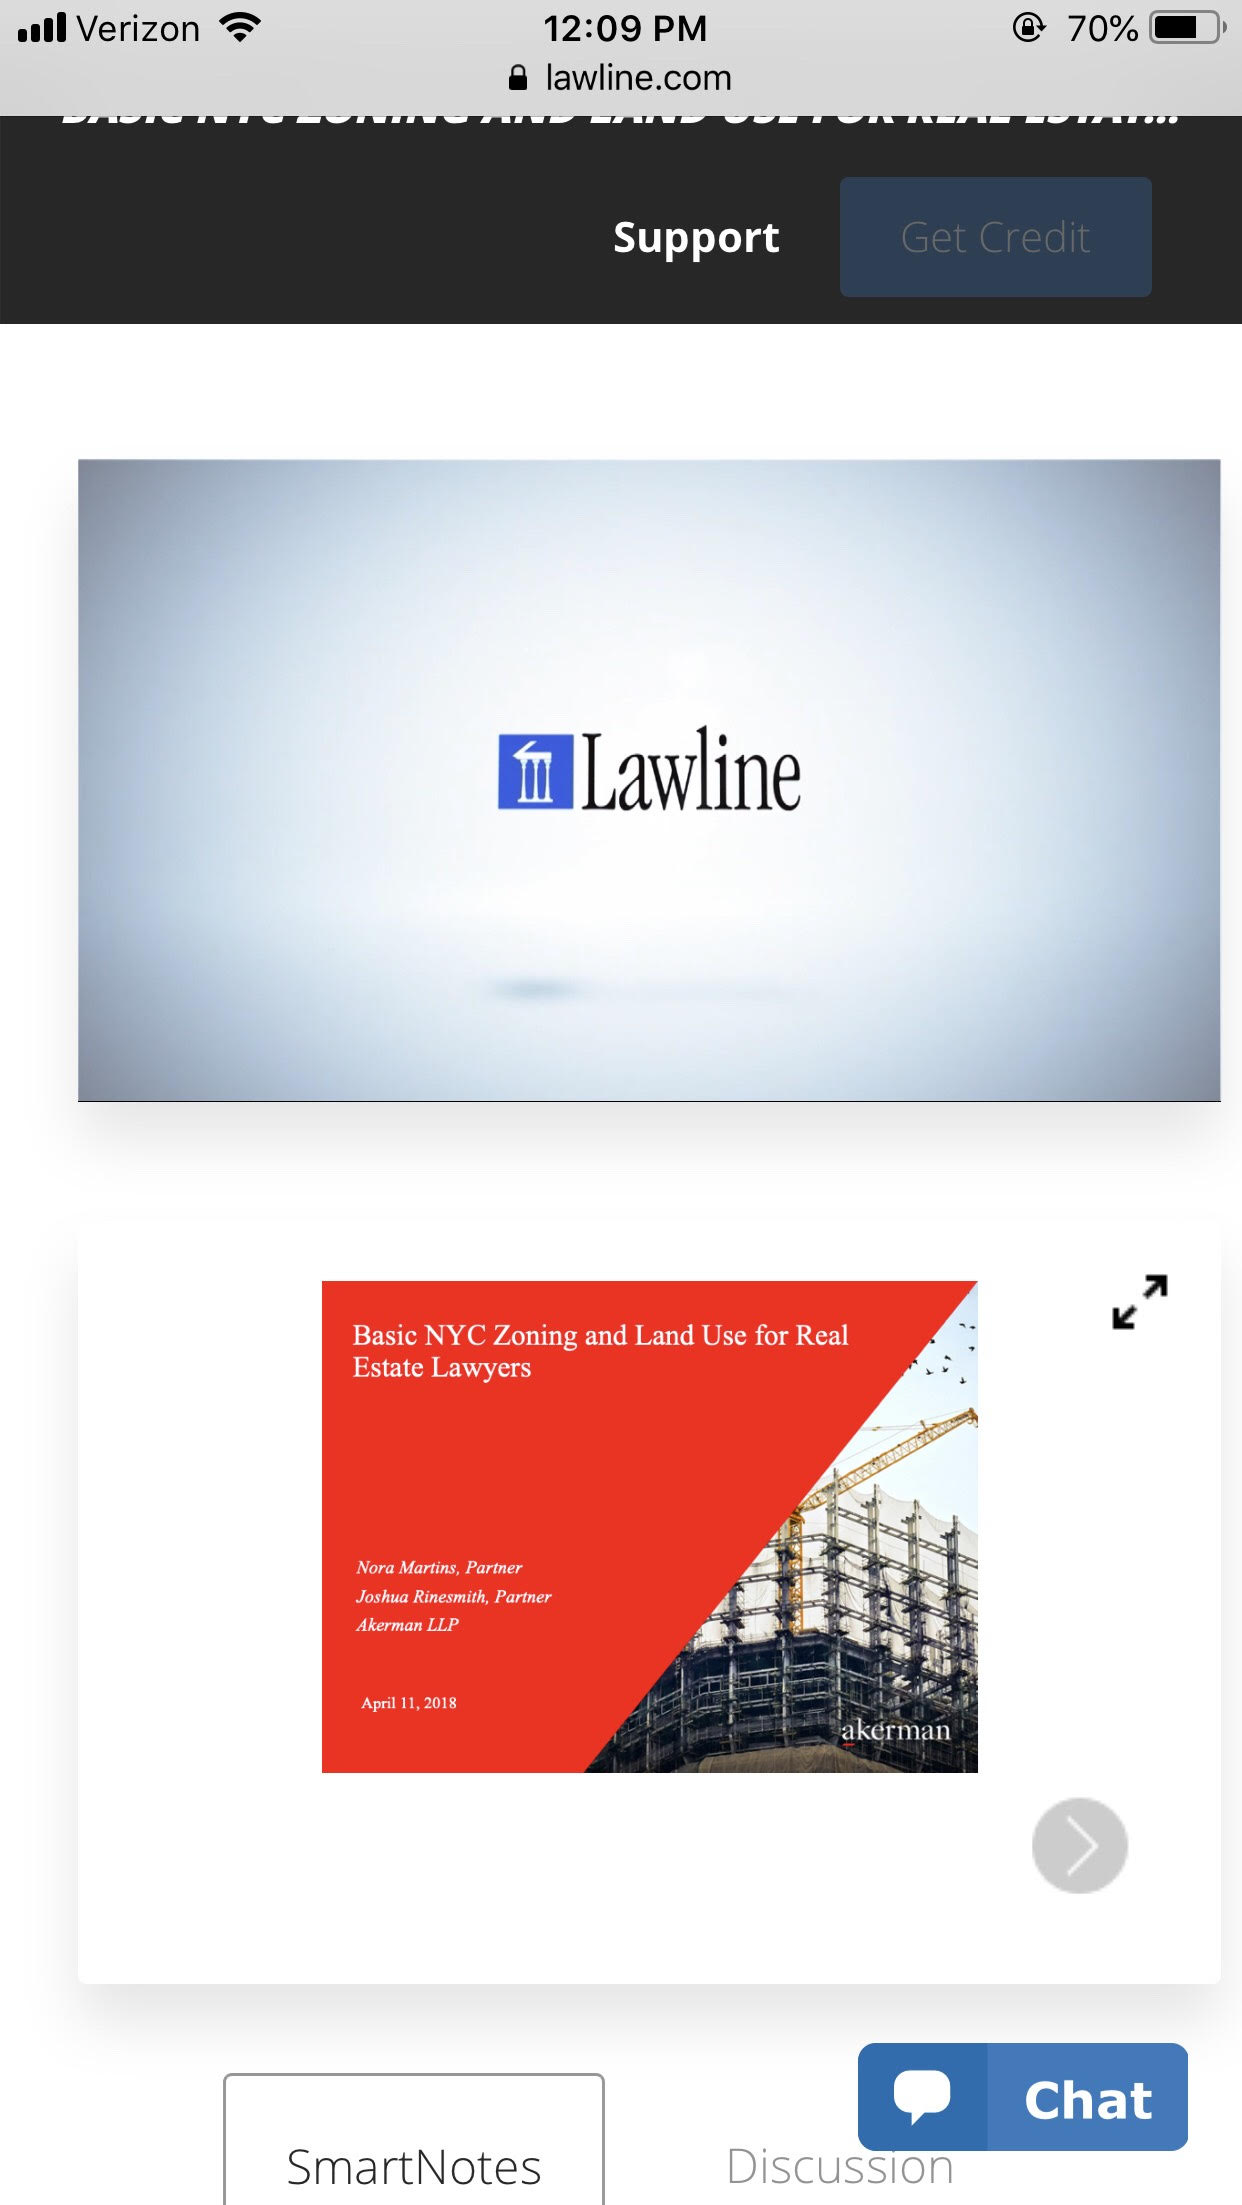 lawline_mobile_course_center.jpg